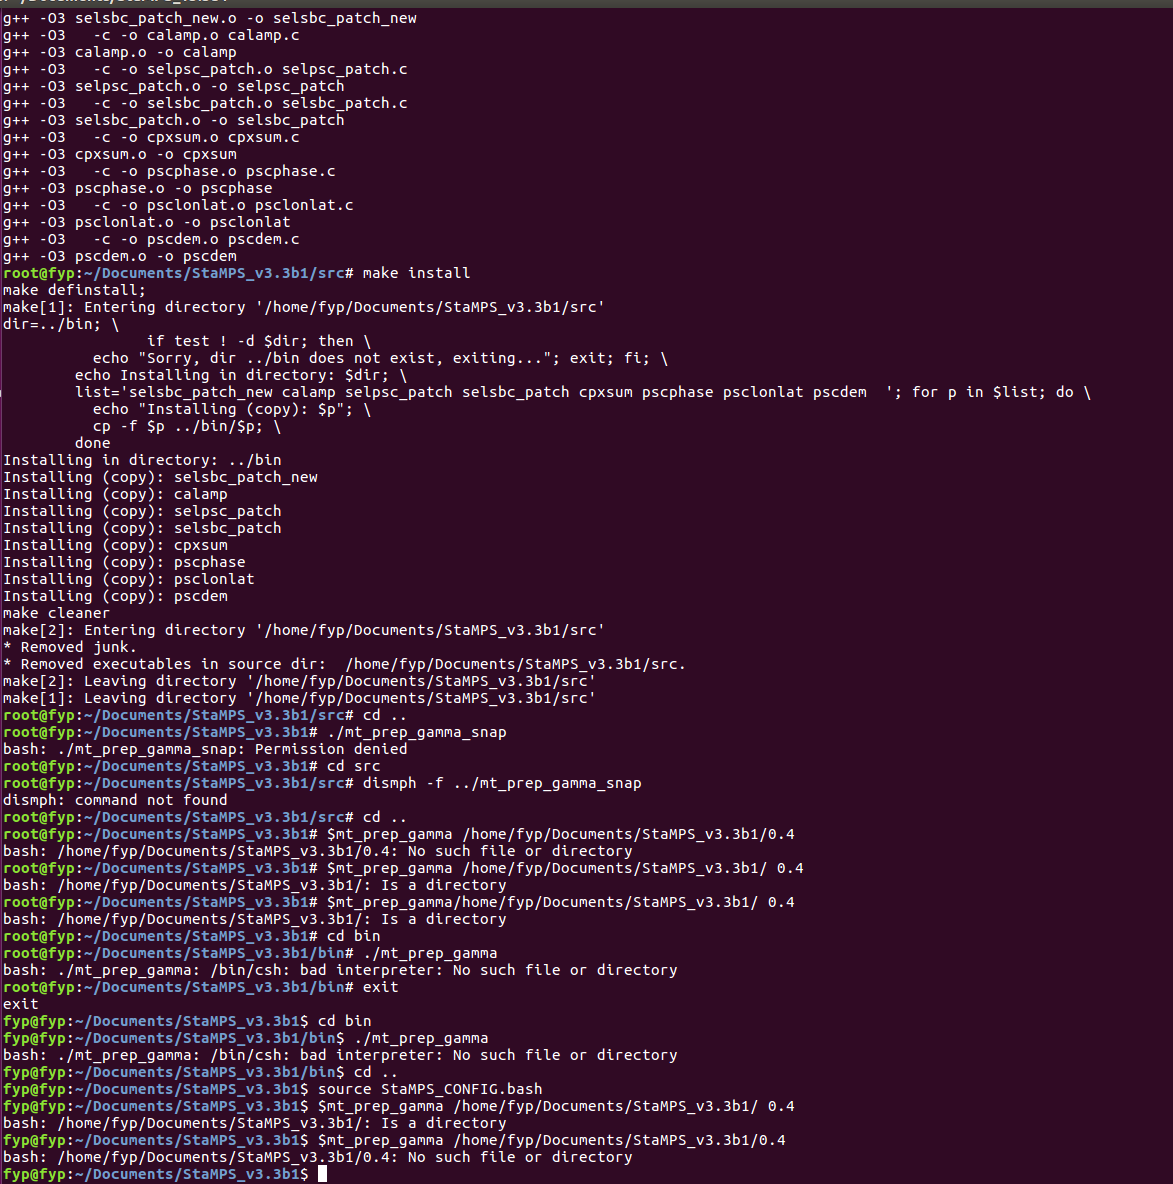 Linux Installation using StaMPS and S-1 data - STaMPS - STEP